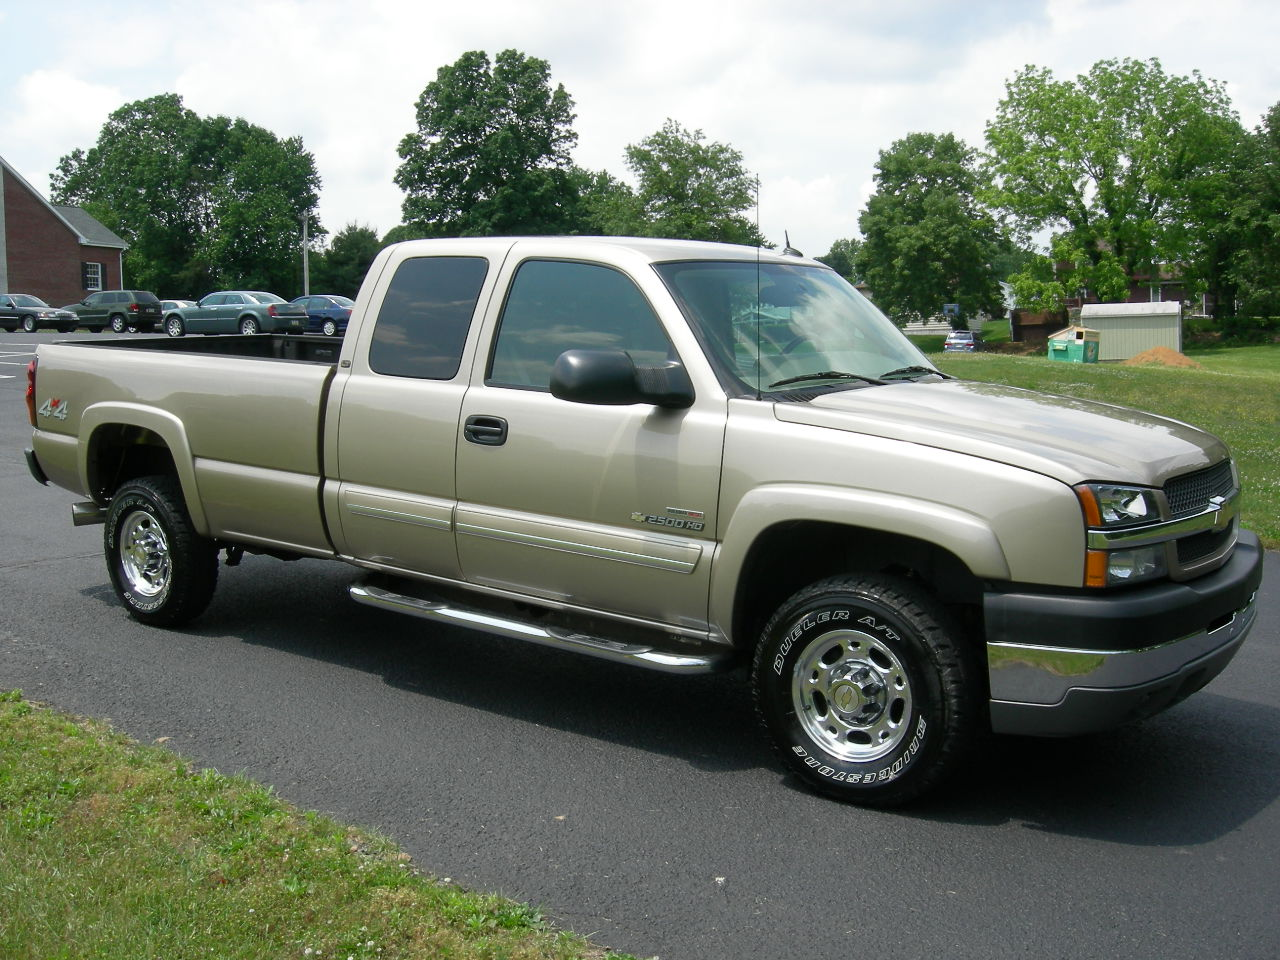 2004 chevrolet silverado 1500 extended cab z71 4wd specs html autos post. Black Bedroom Furniture Sets. Home Design Ideas